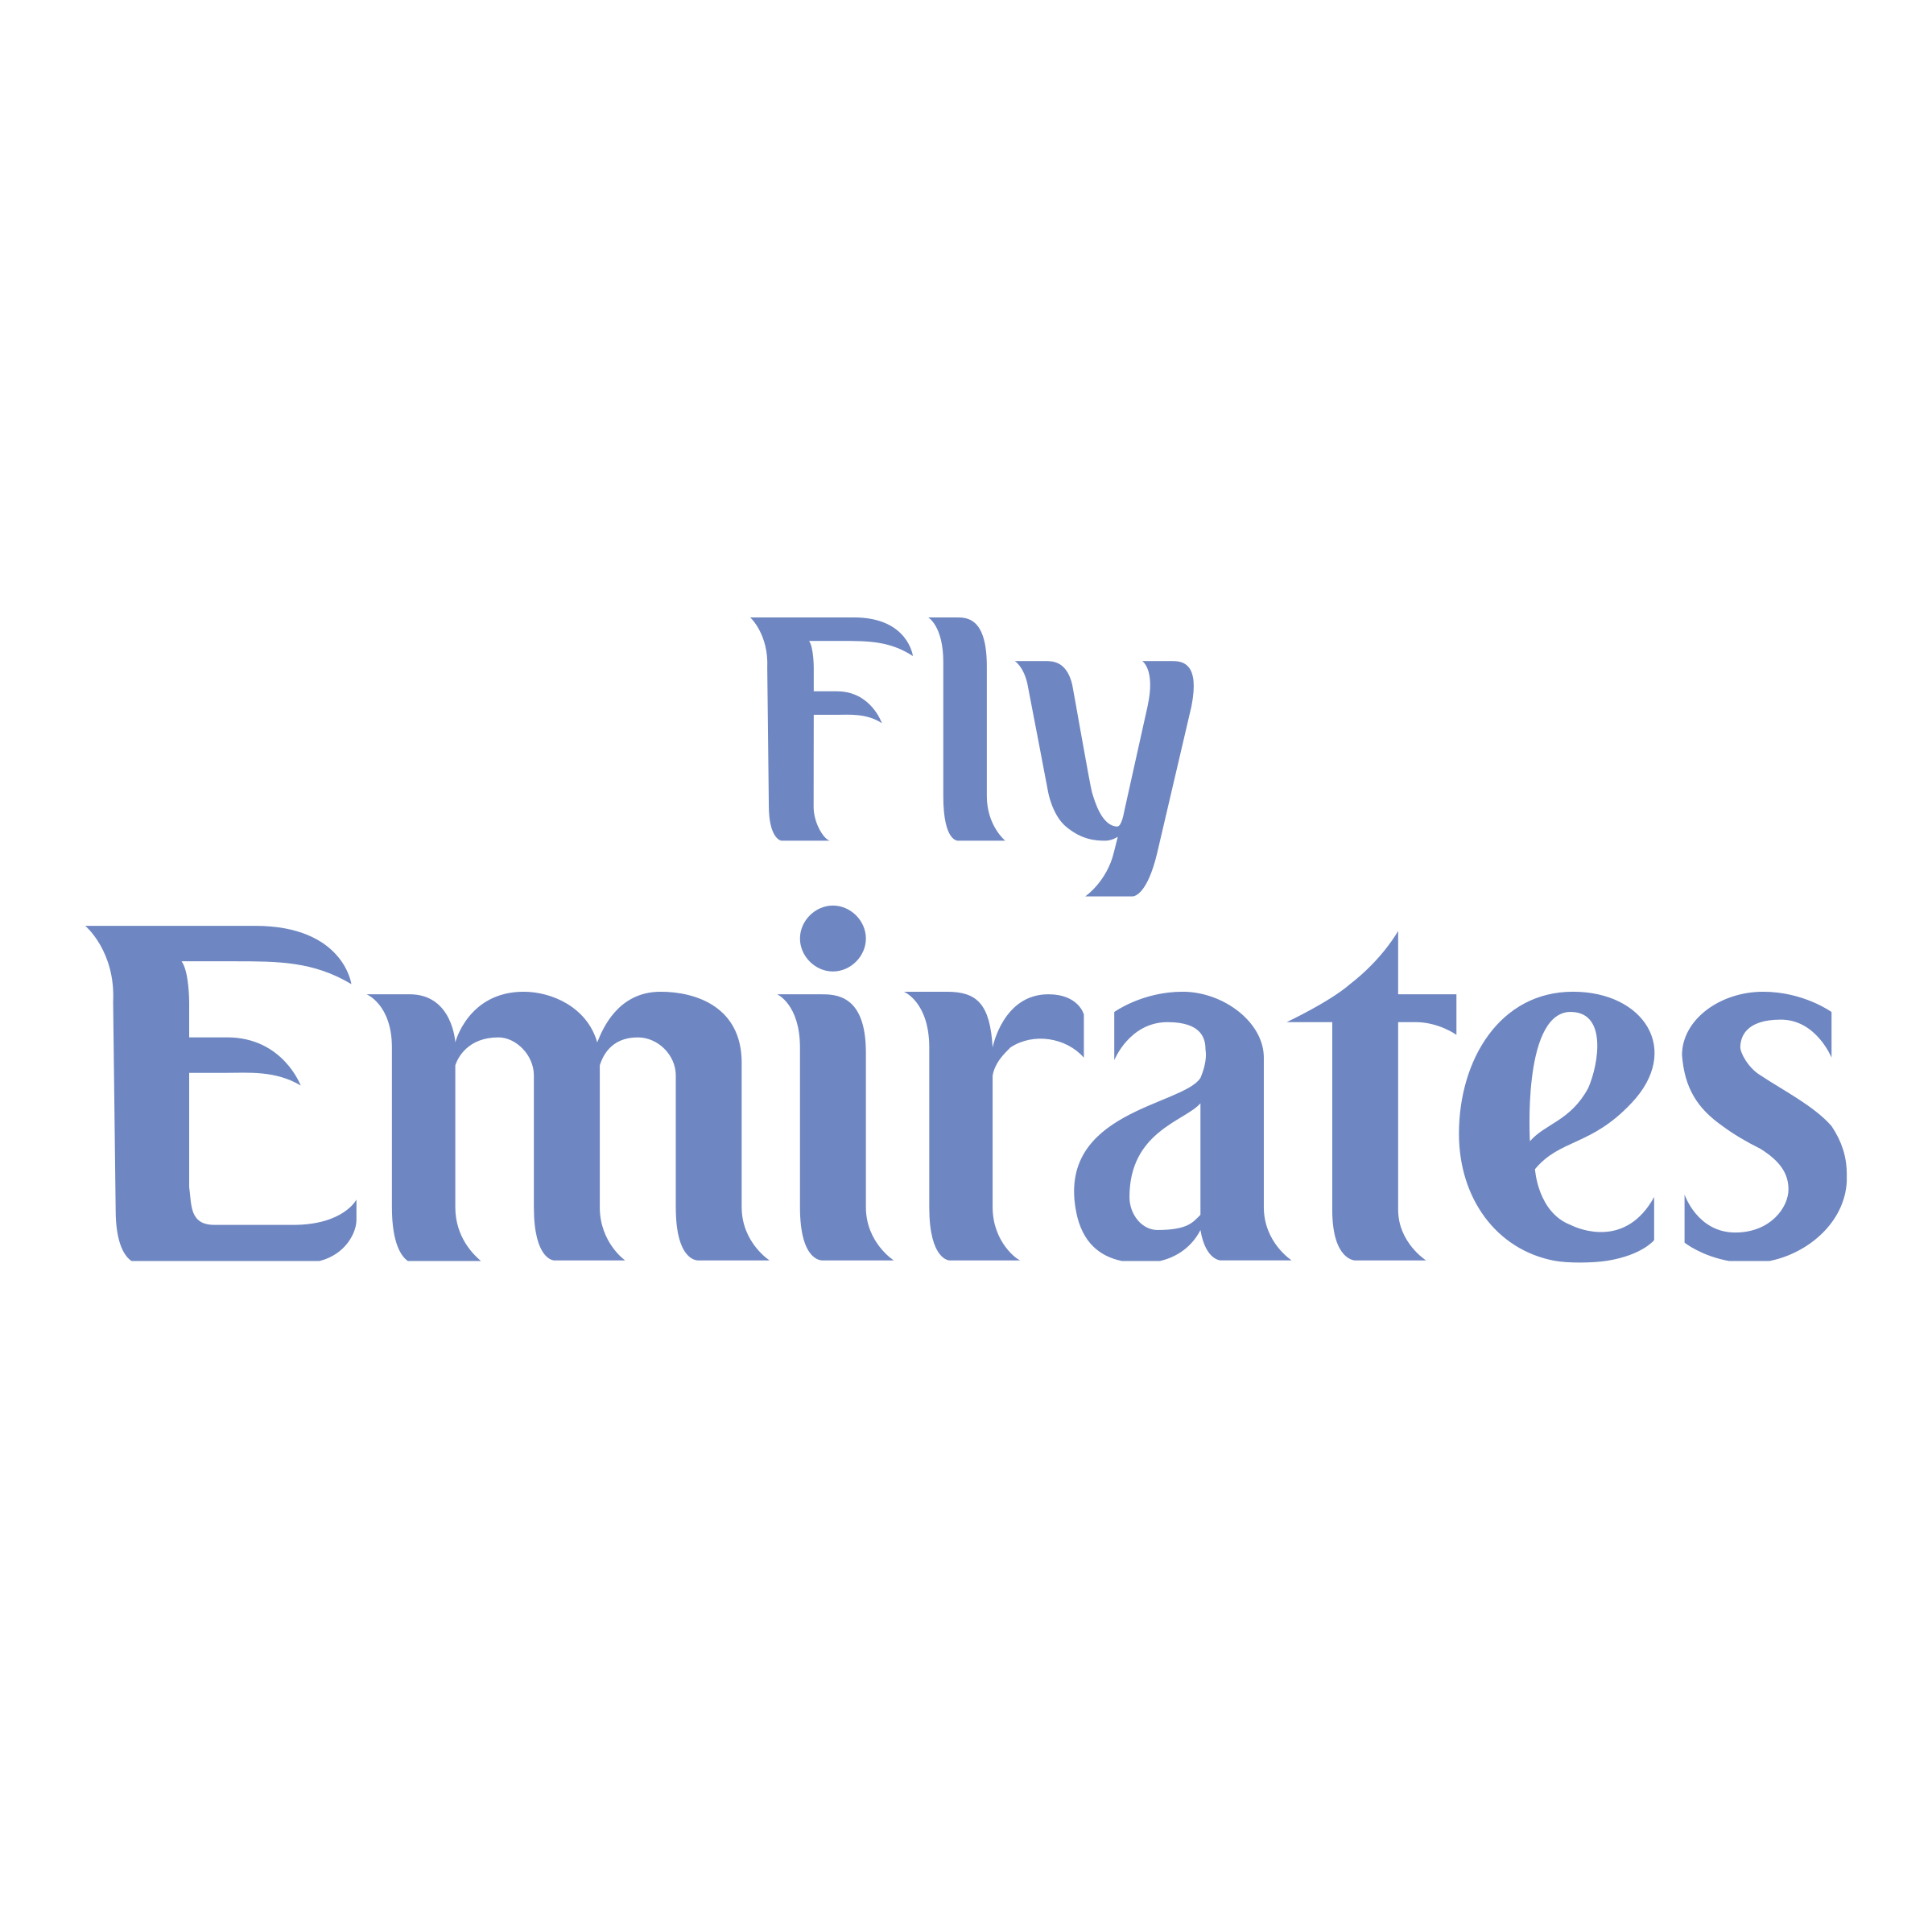 Fly emirates logo png. Transparent svg vector freebie